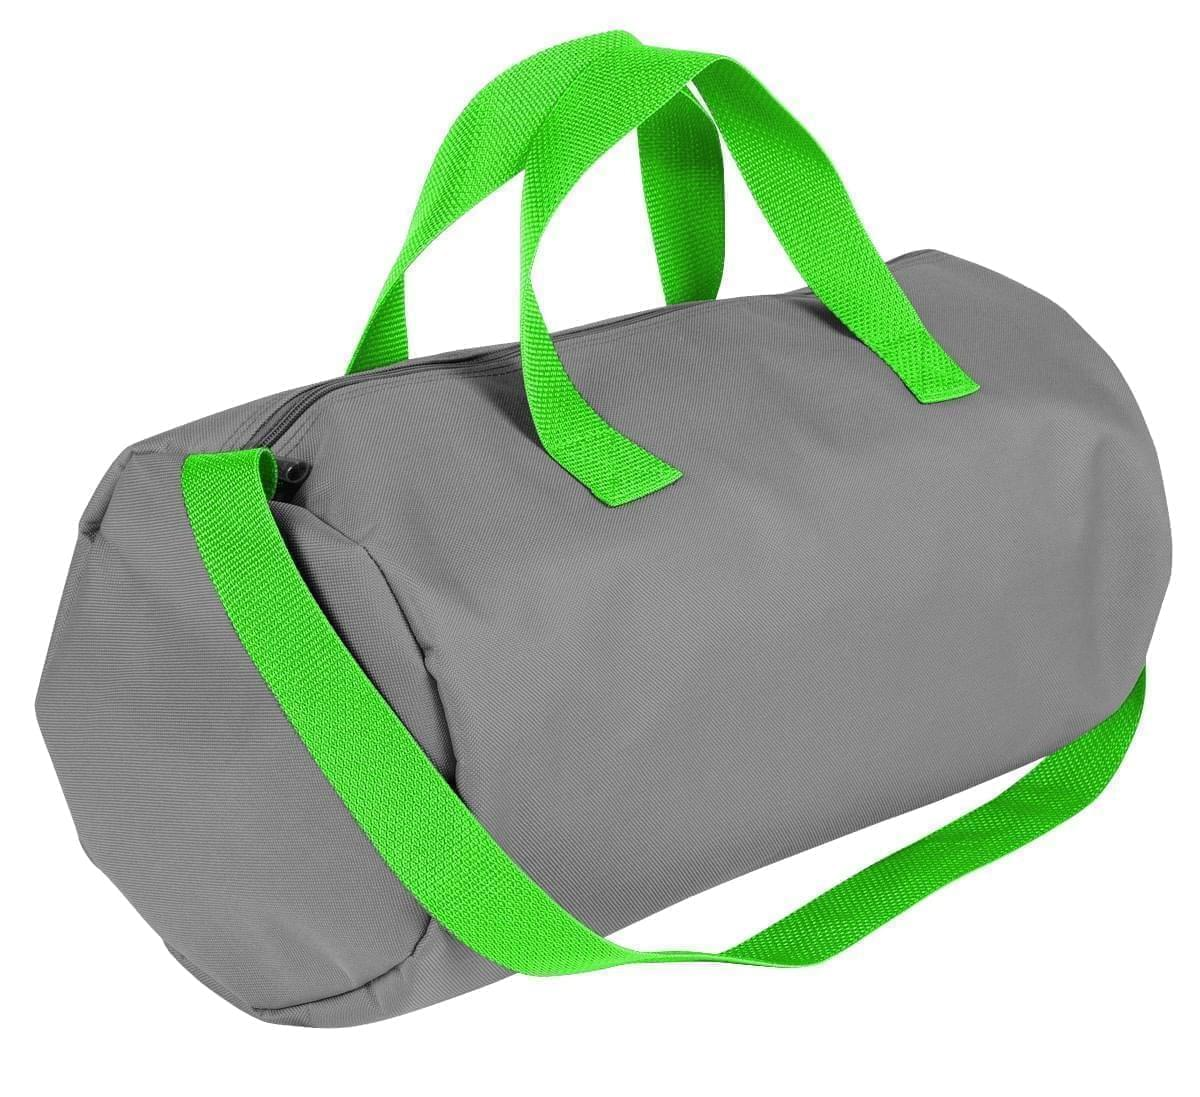 USA Made Nylon Poly Gym Roll Bags, Grey-Lime, ROCX31AA1Y